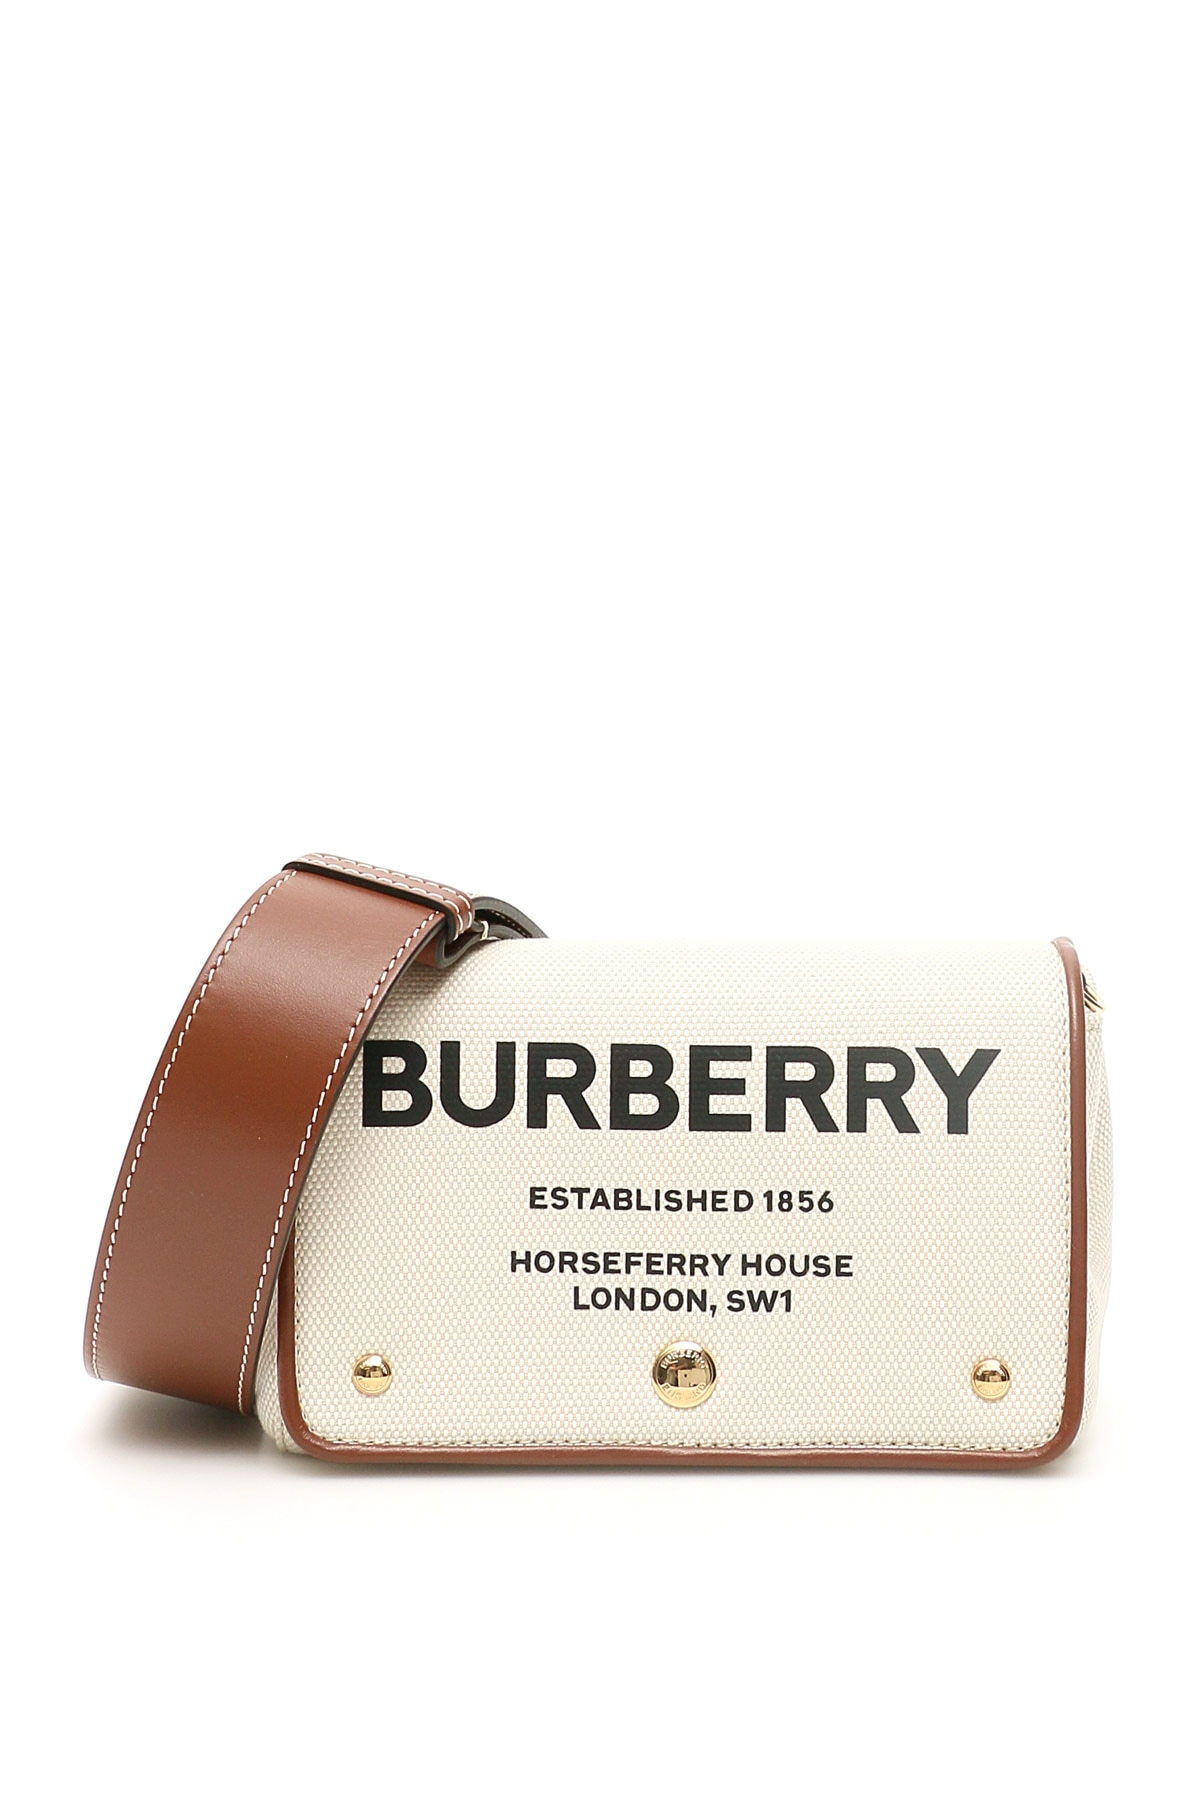 BURBERRY HACKBERRY MINI BAG OS Beige, Brown Leather, Cotton